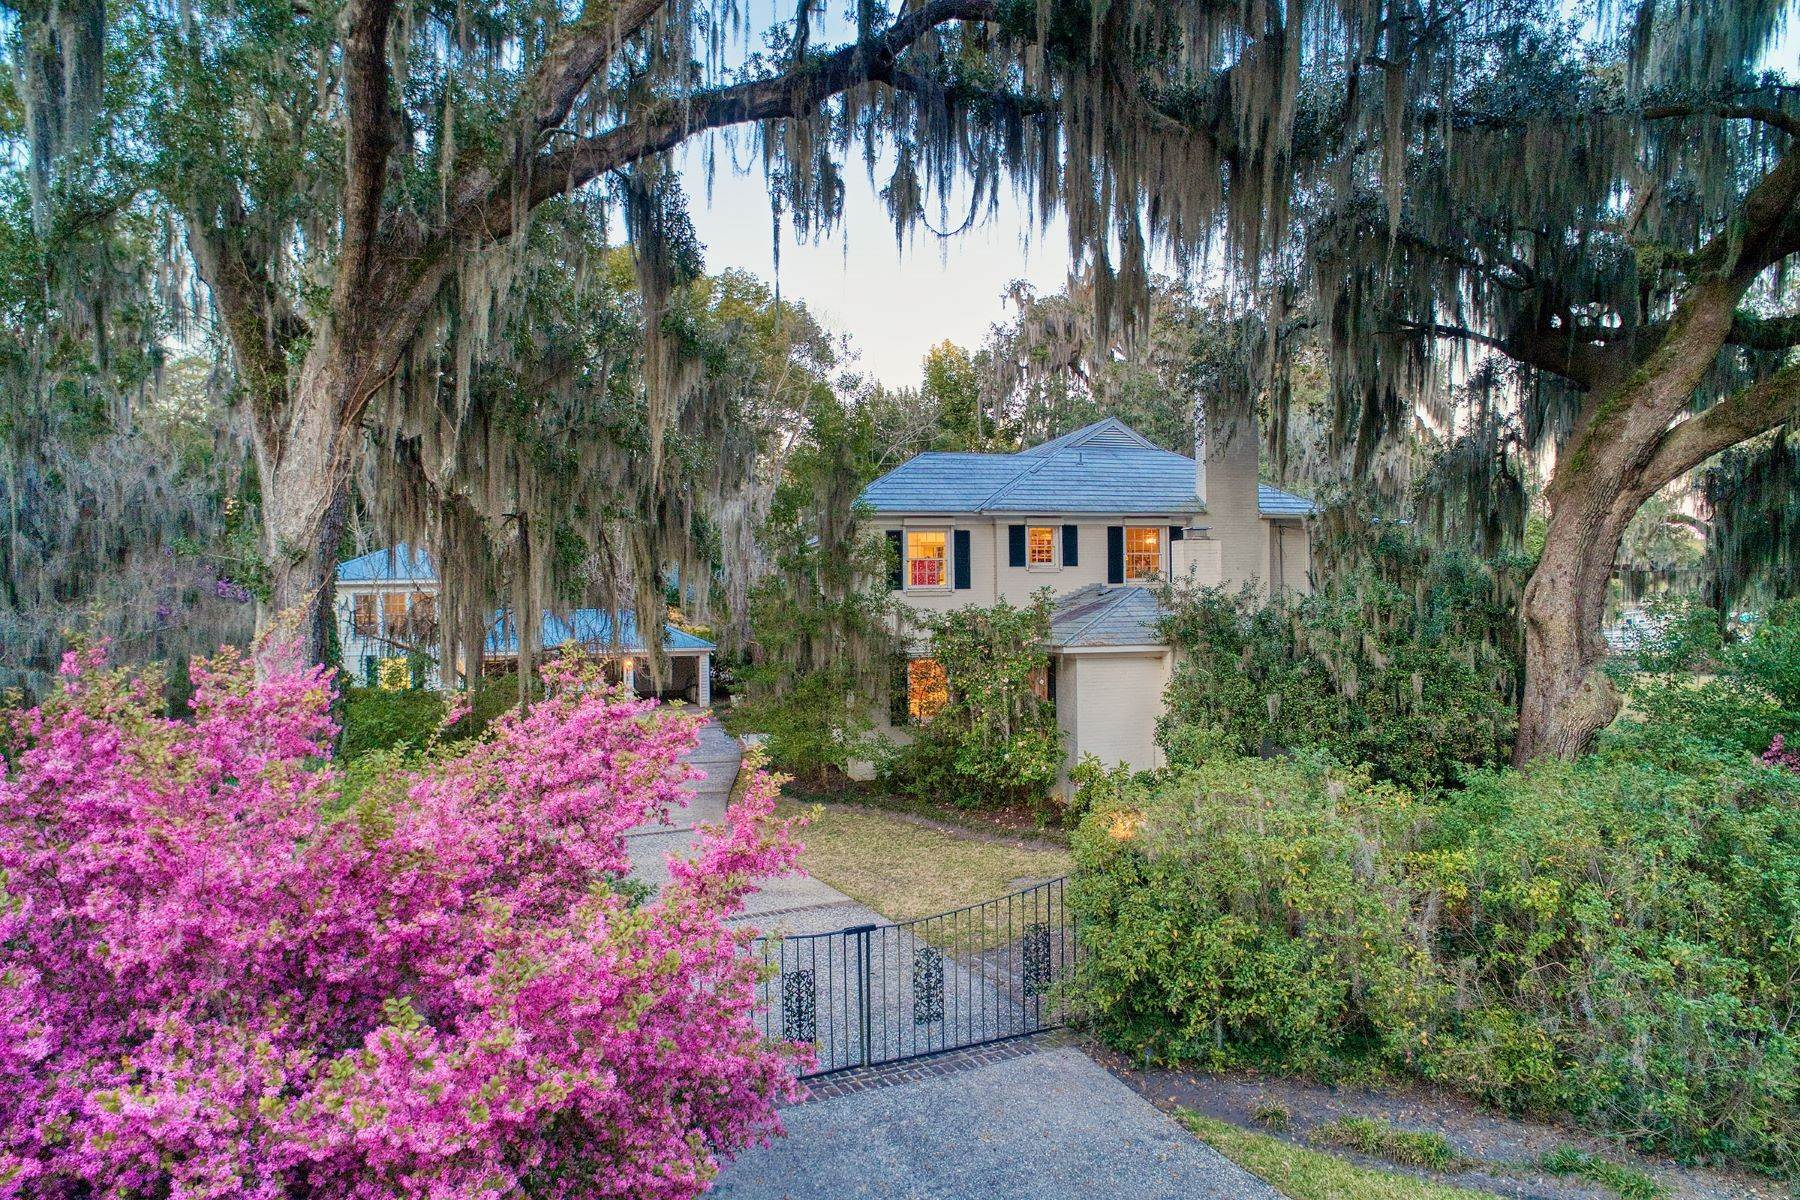 Property for Sale at Waterfront Home on Historic Bluff Drive in Isle of Hope 23 W Bluff Drive Savannah, Georgia GA United States